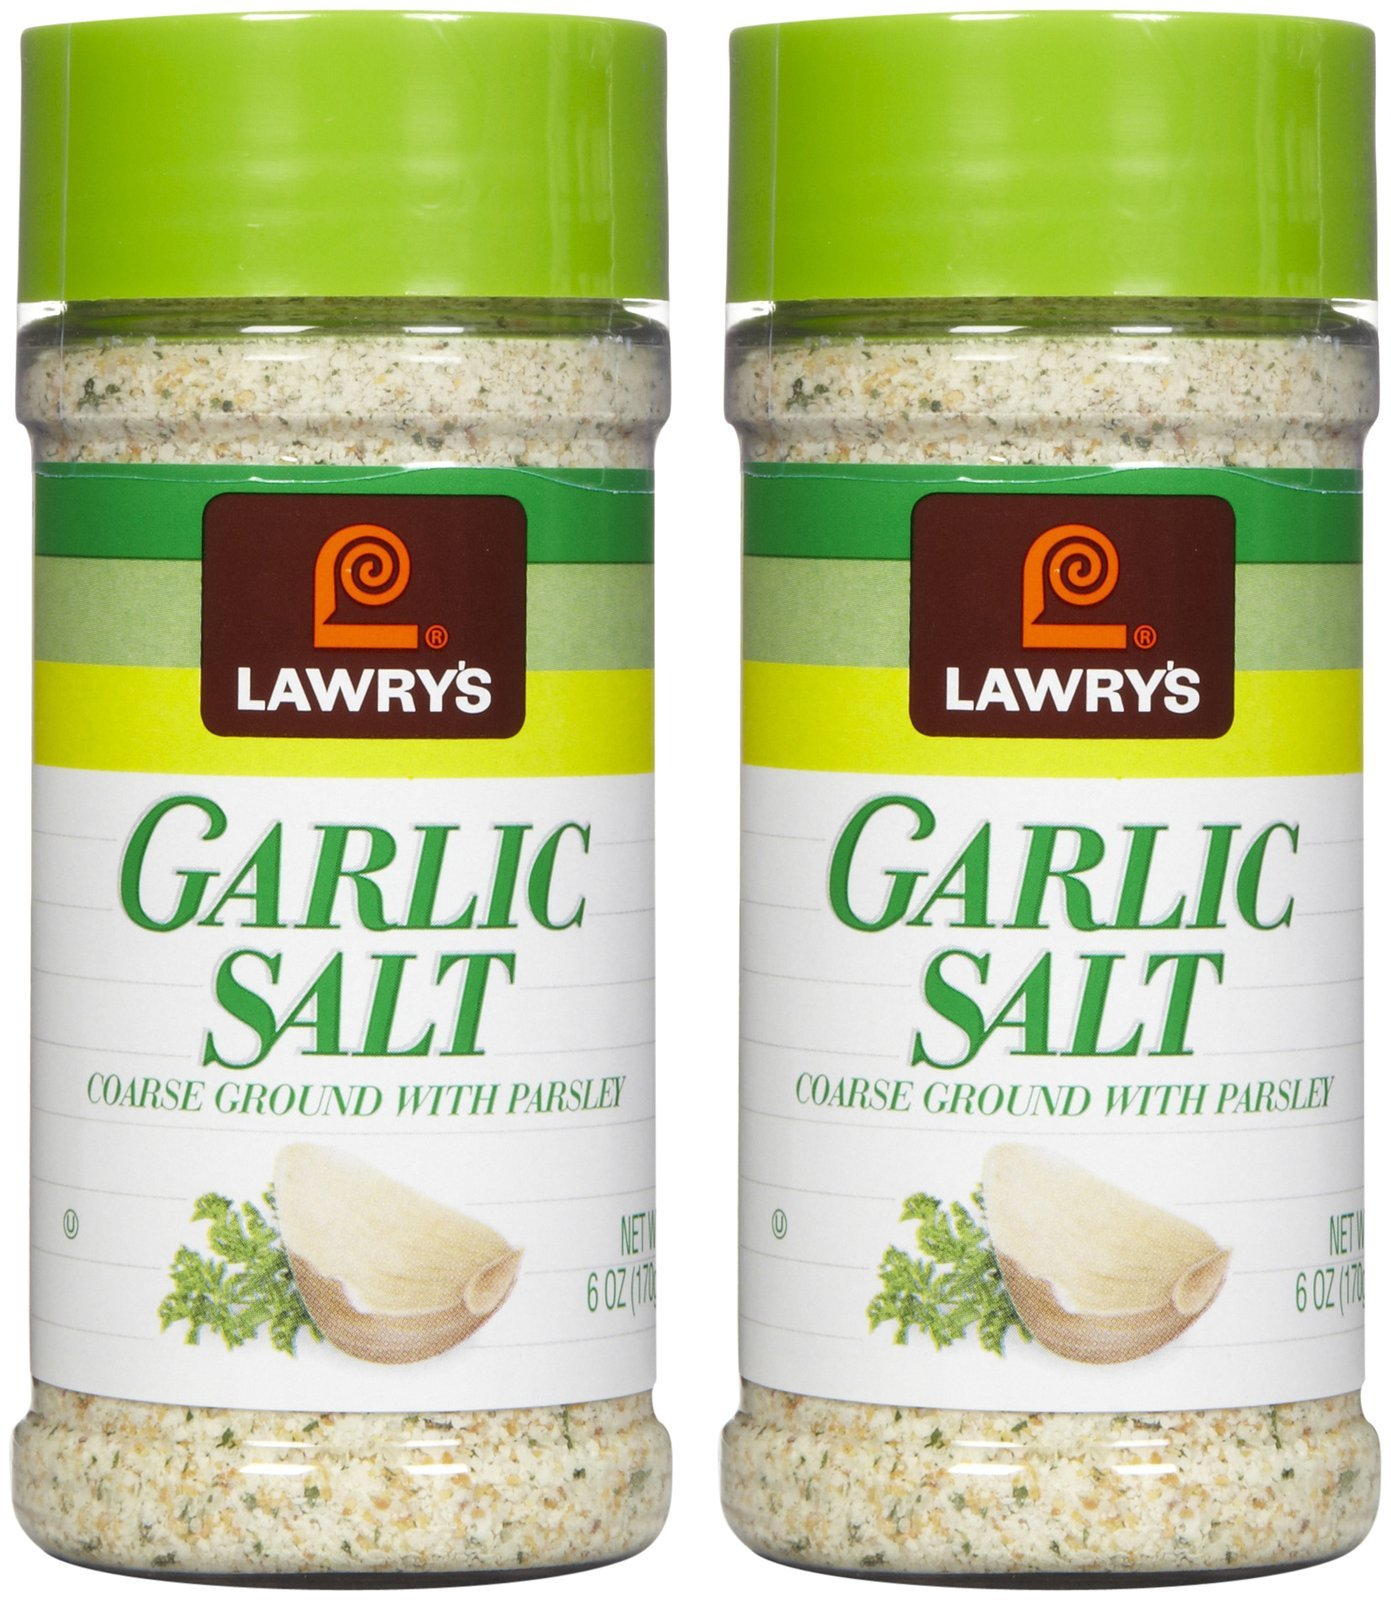 Lawry's Garlic Salt, 6 oz, 2 pk